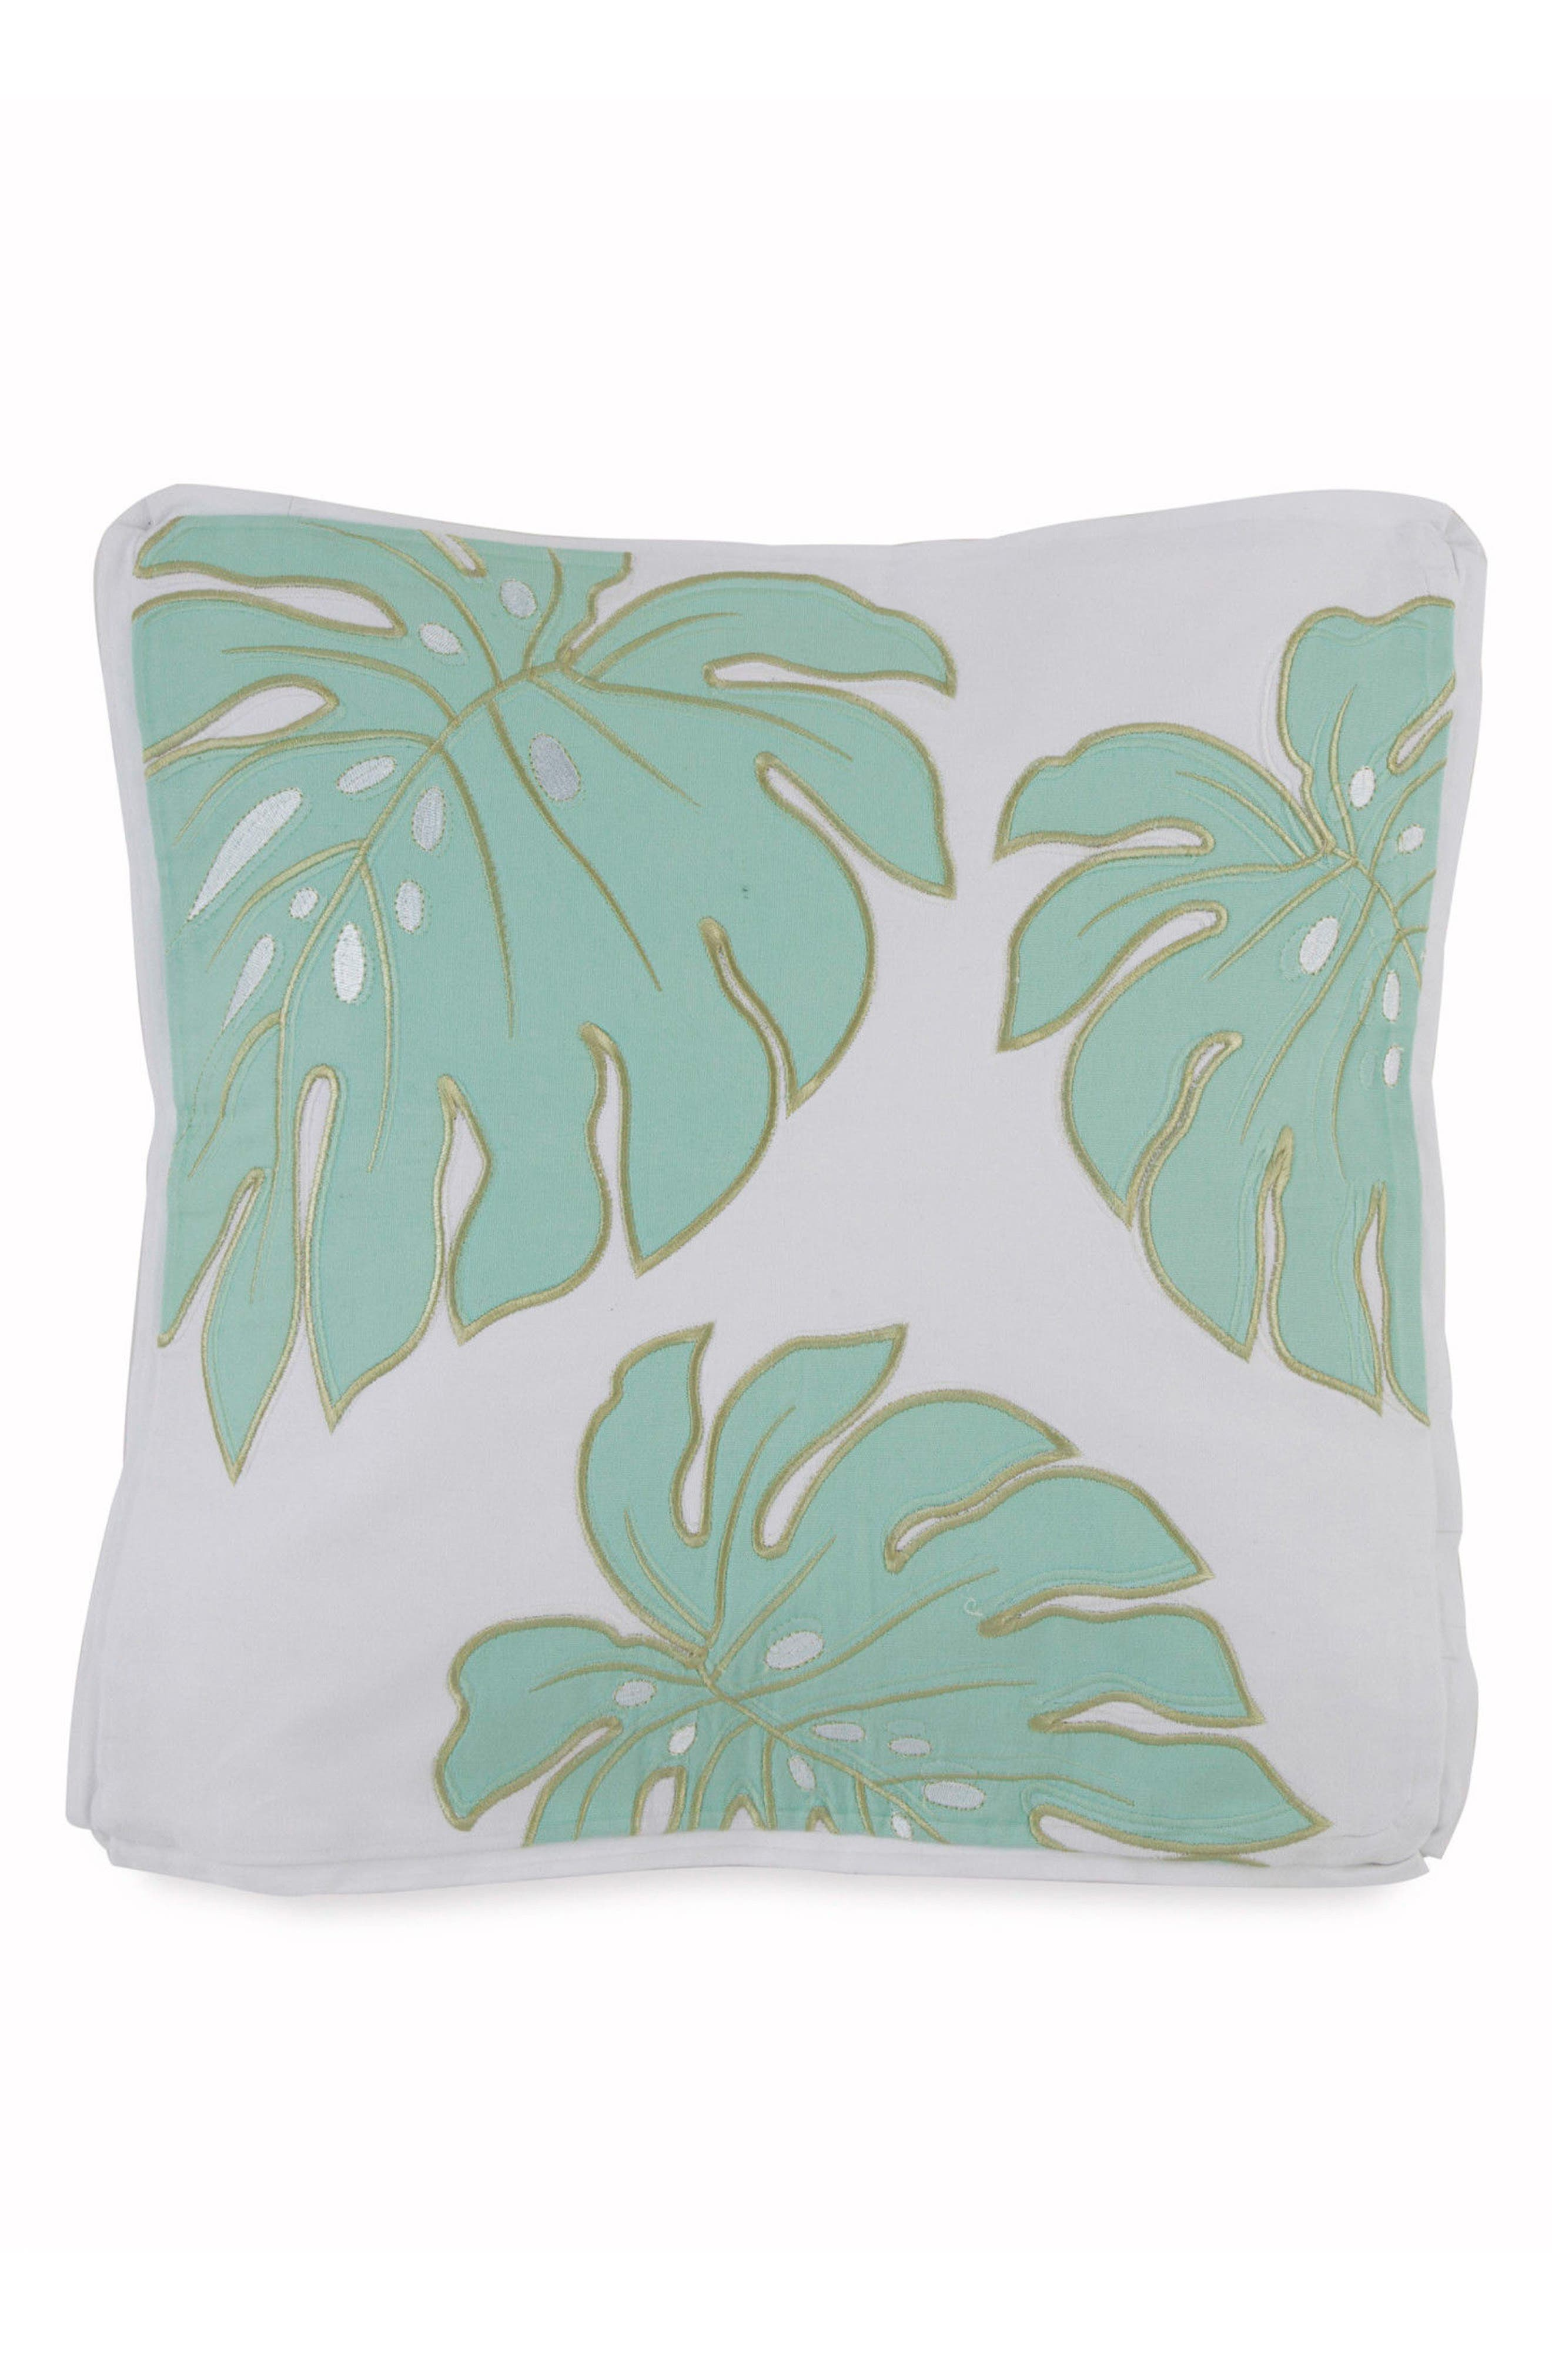 Tropical Retreat Monstera Leaf Square Accent Pillow,                             Main thumbnail 1, color,                             100